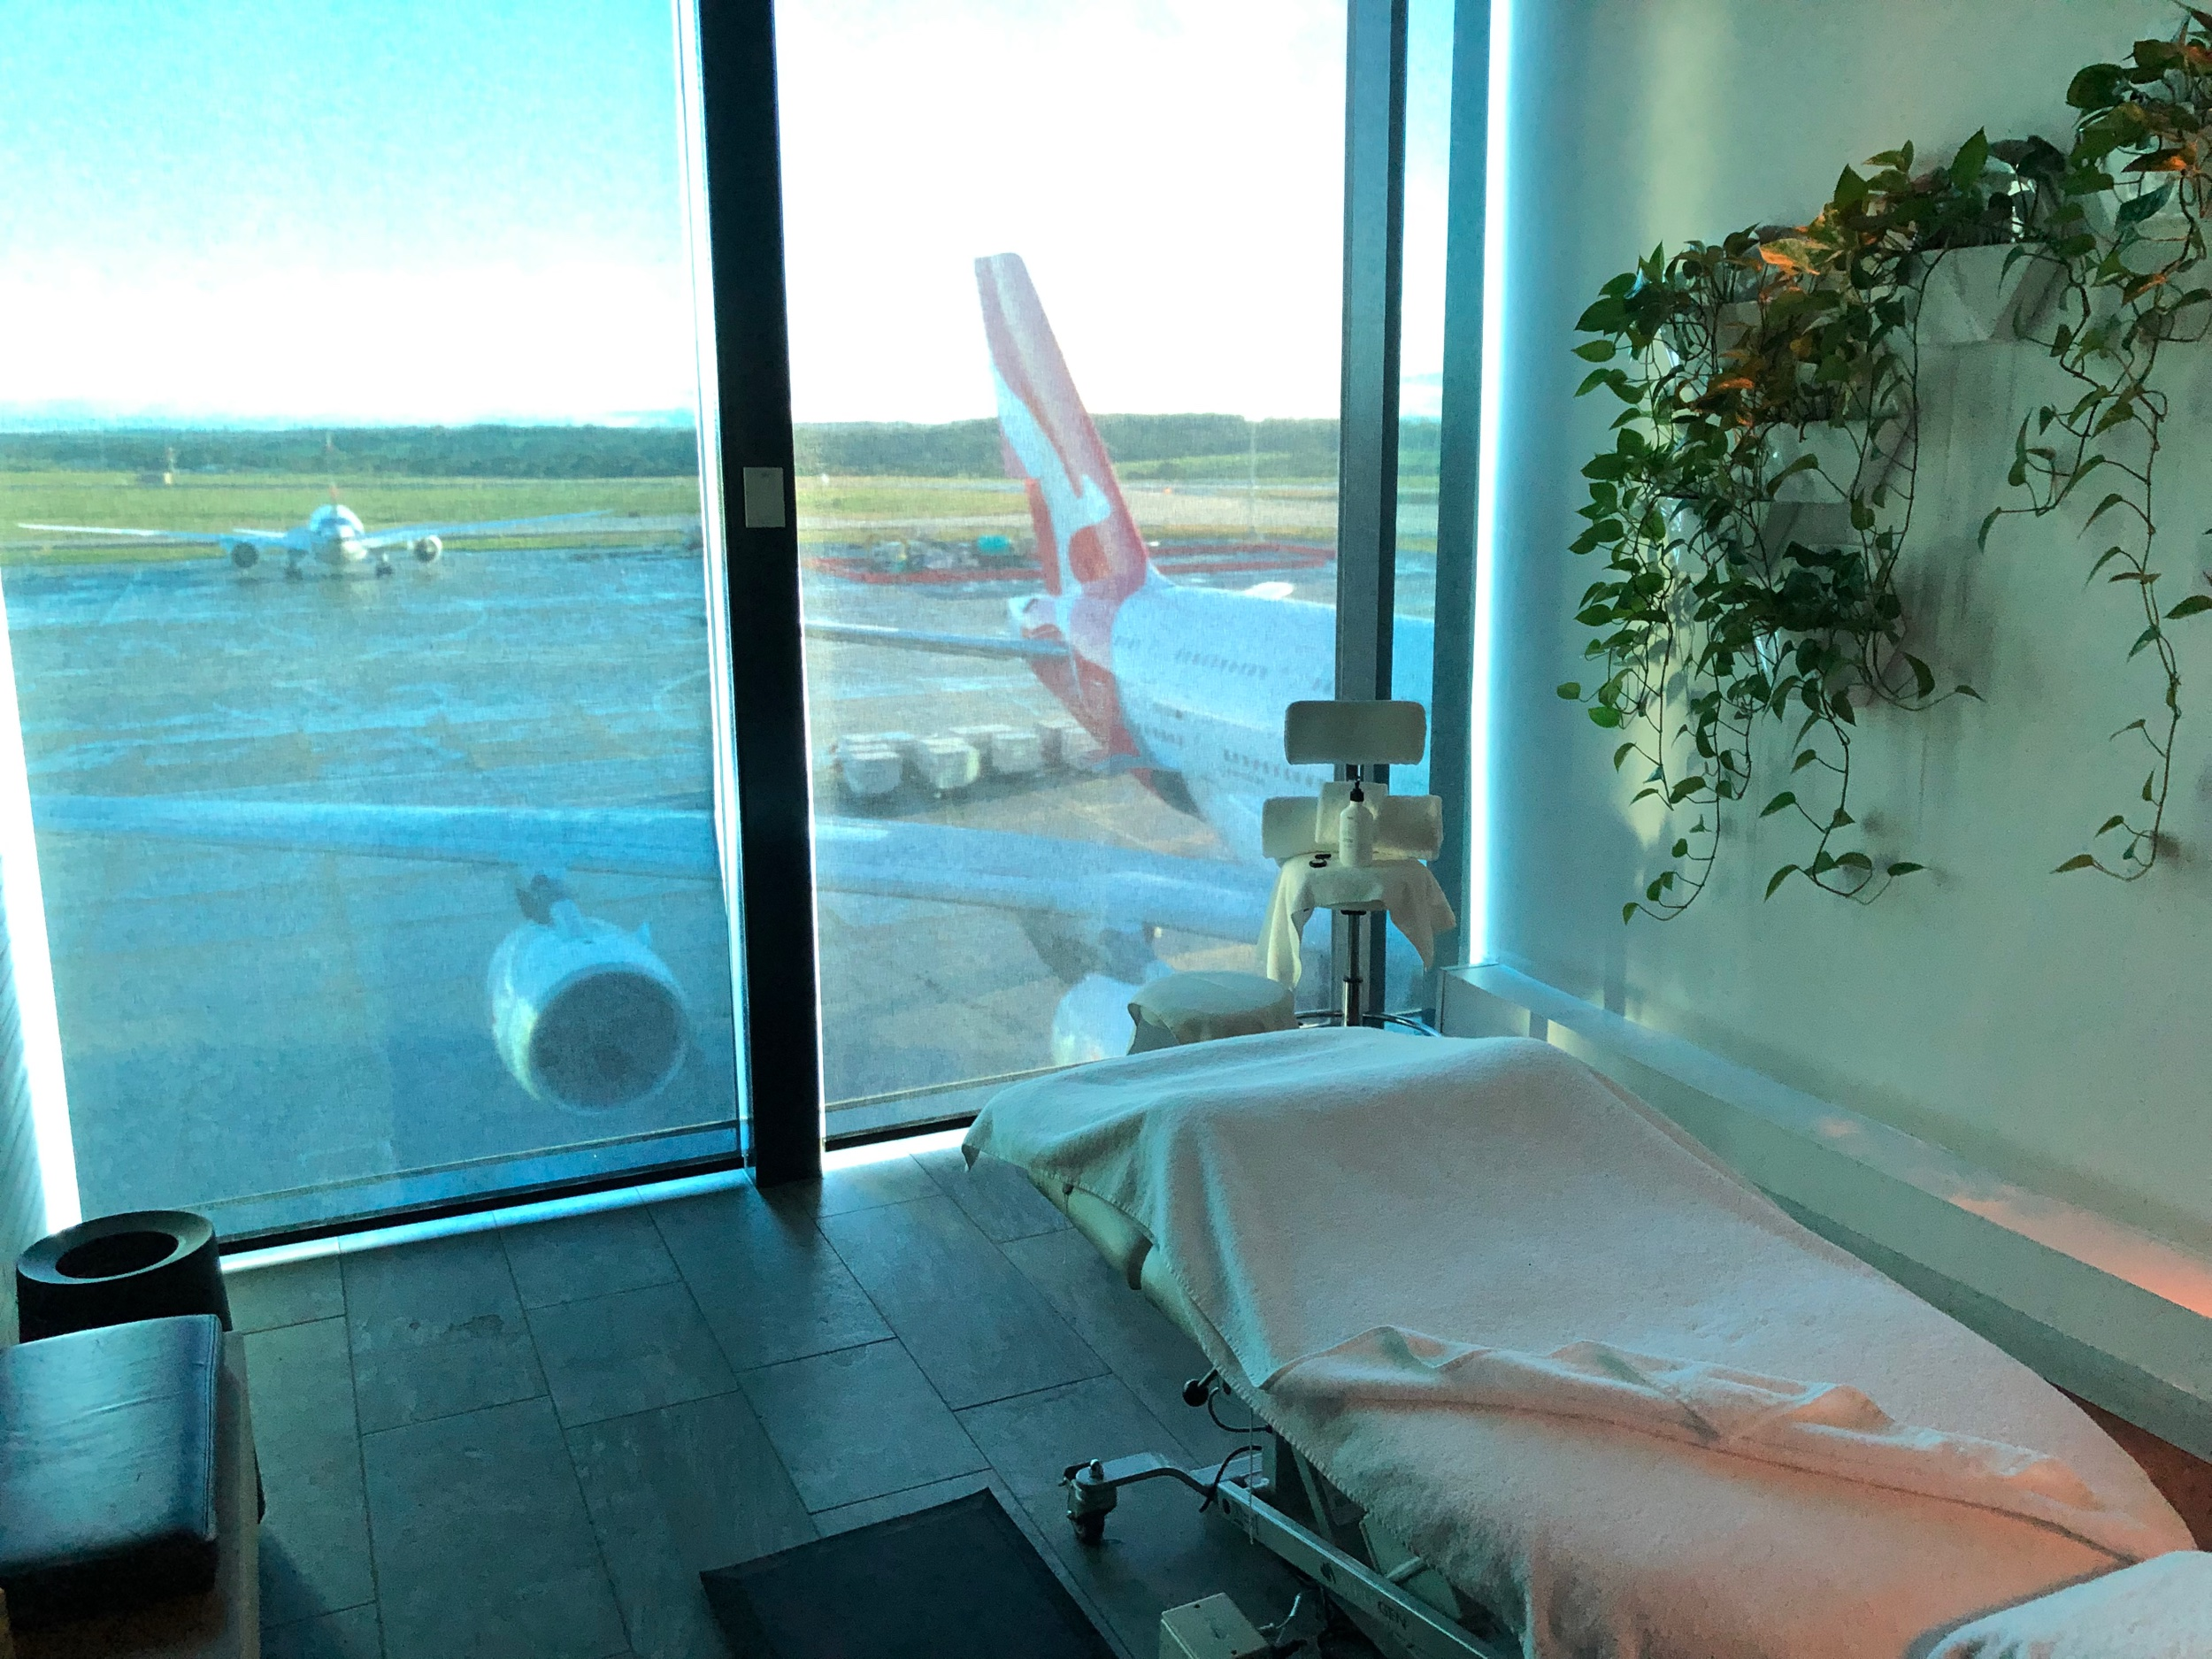 Qantas First Class Lounge Melbourne - Treatment Room with a View